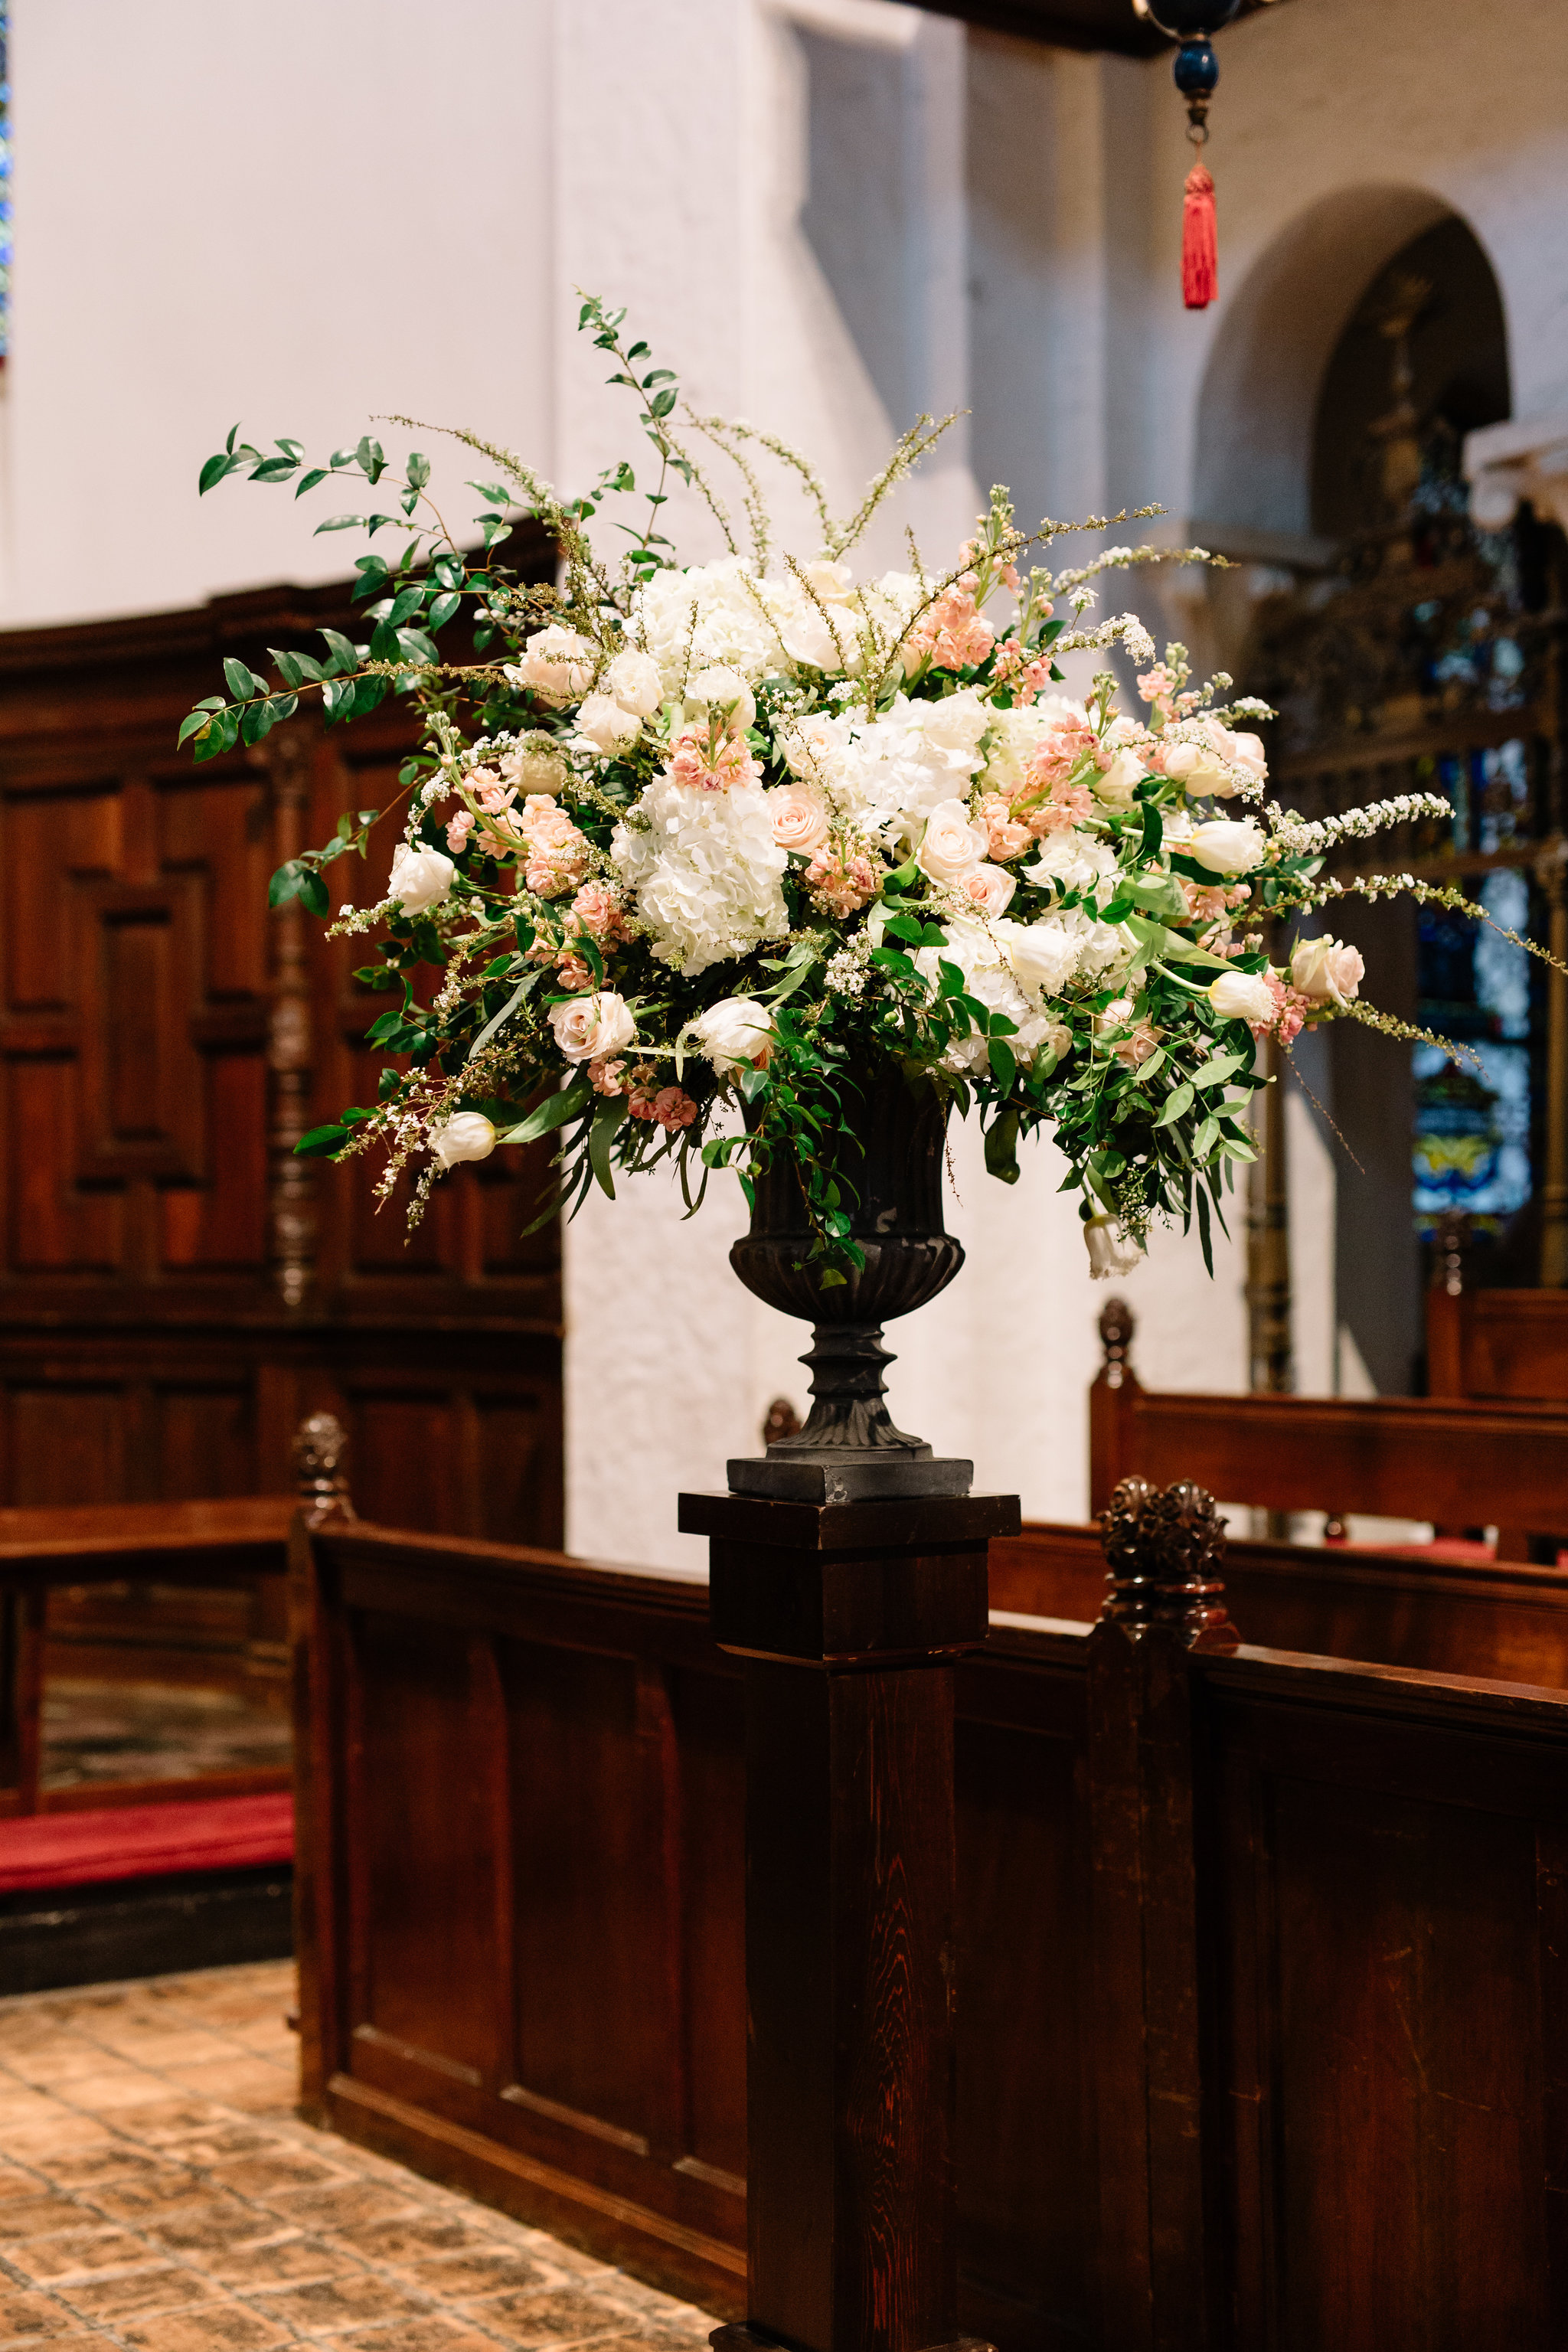 Ceremony floral arrangement of ivory hydrangea, blush roses and sprigs of greenery